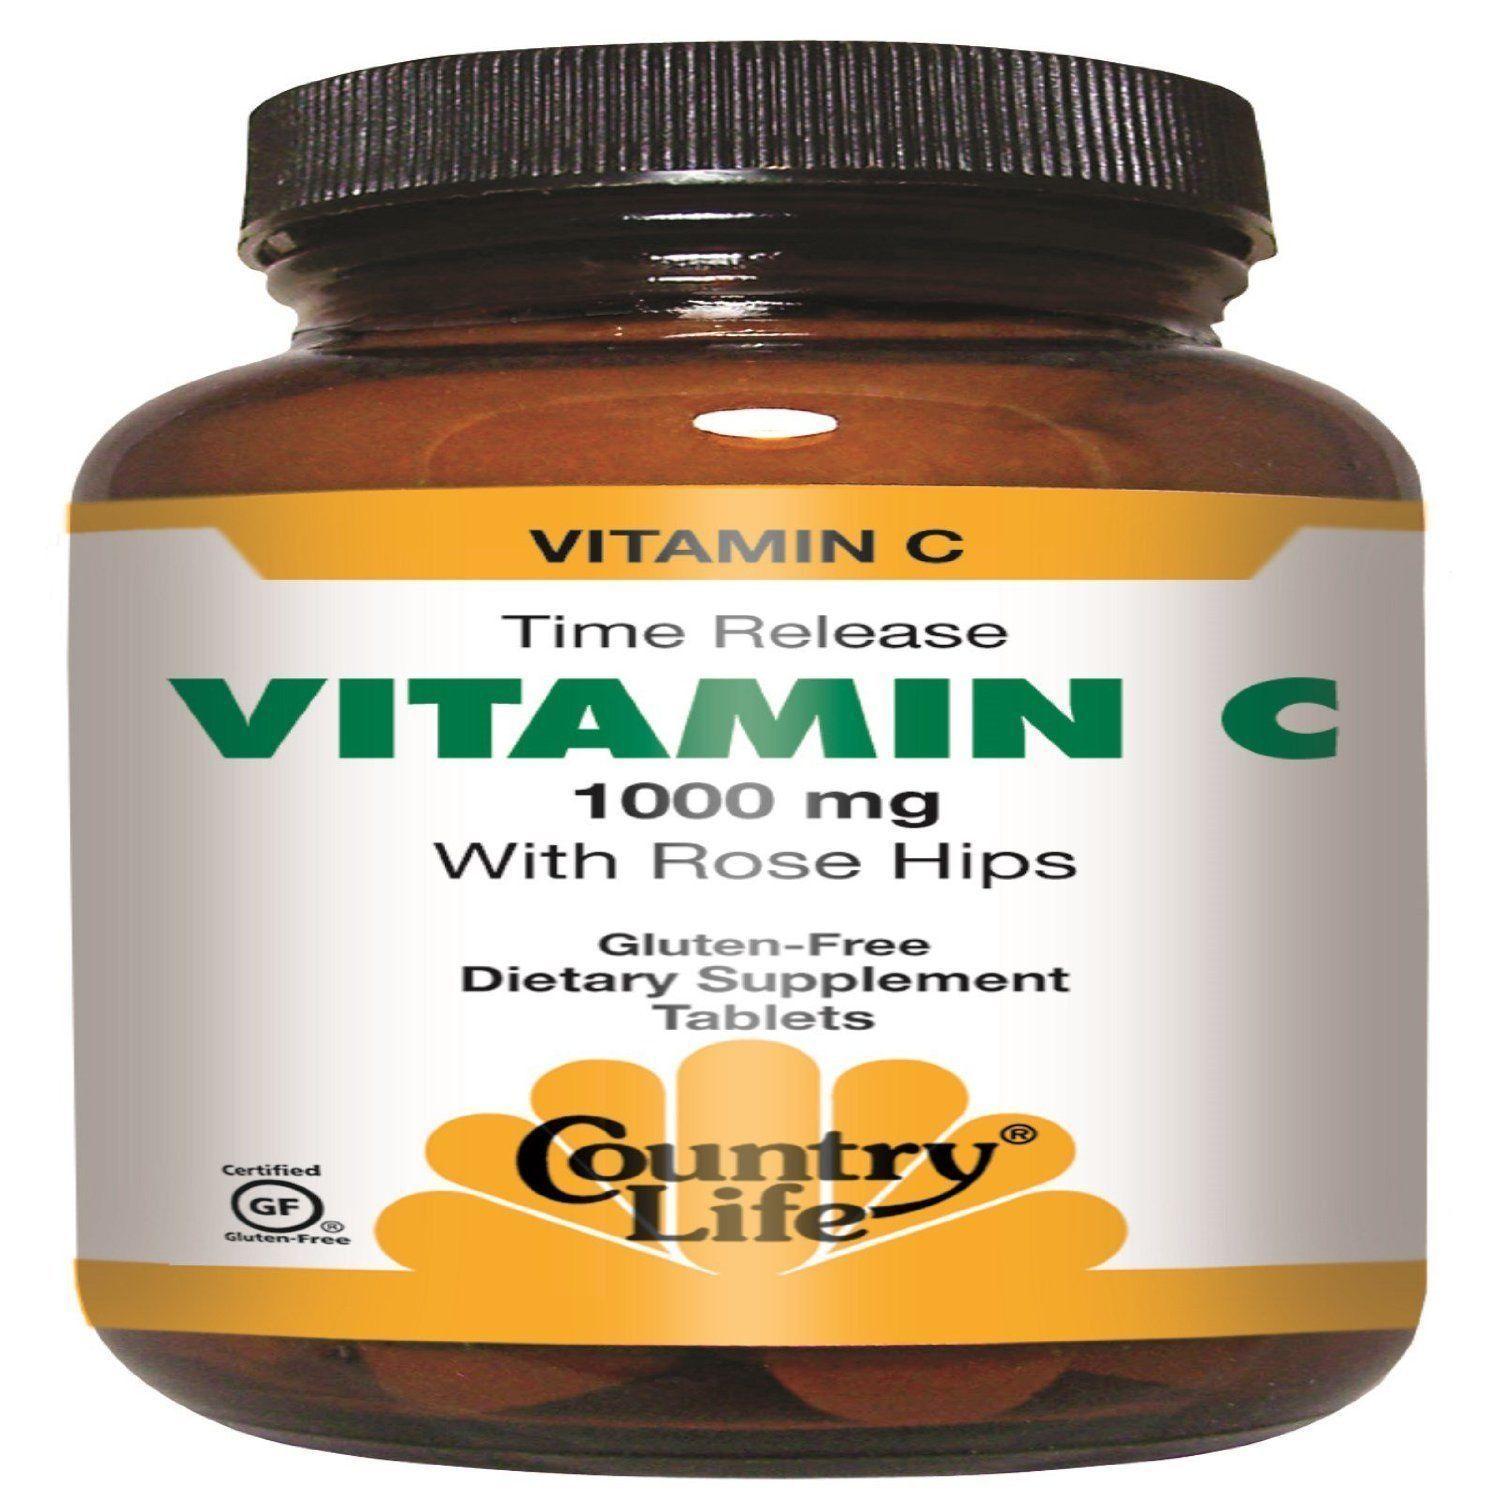 Country Life Vitamin C 1000 Rose Hips Time Release 250 Ct